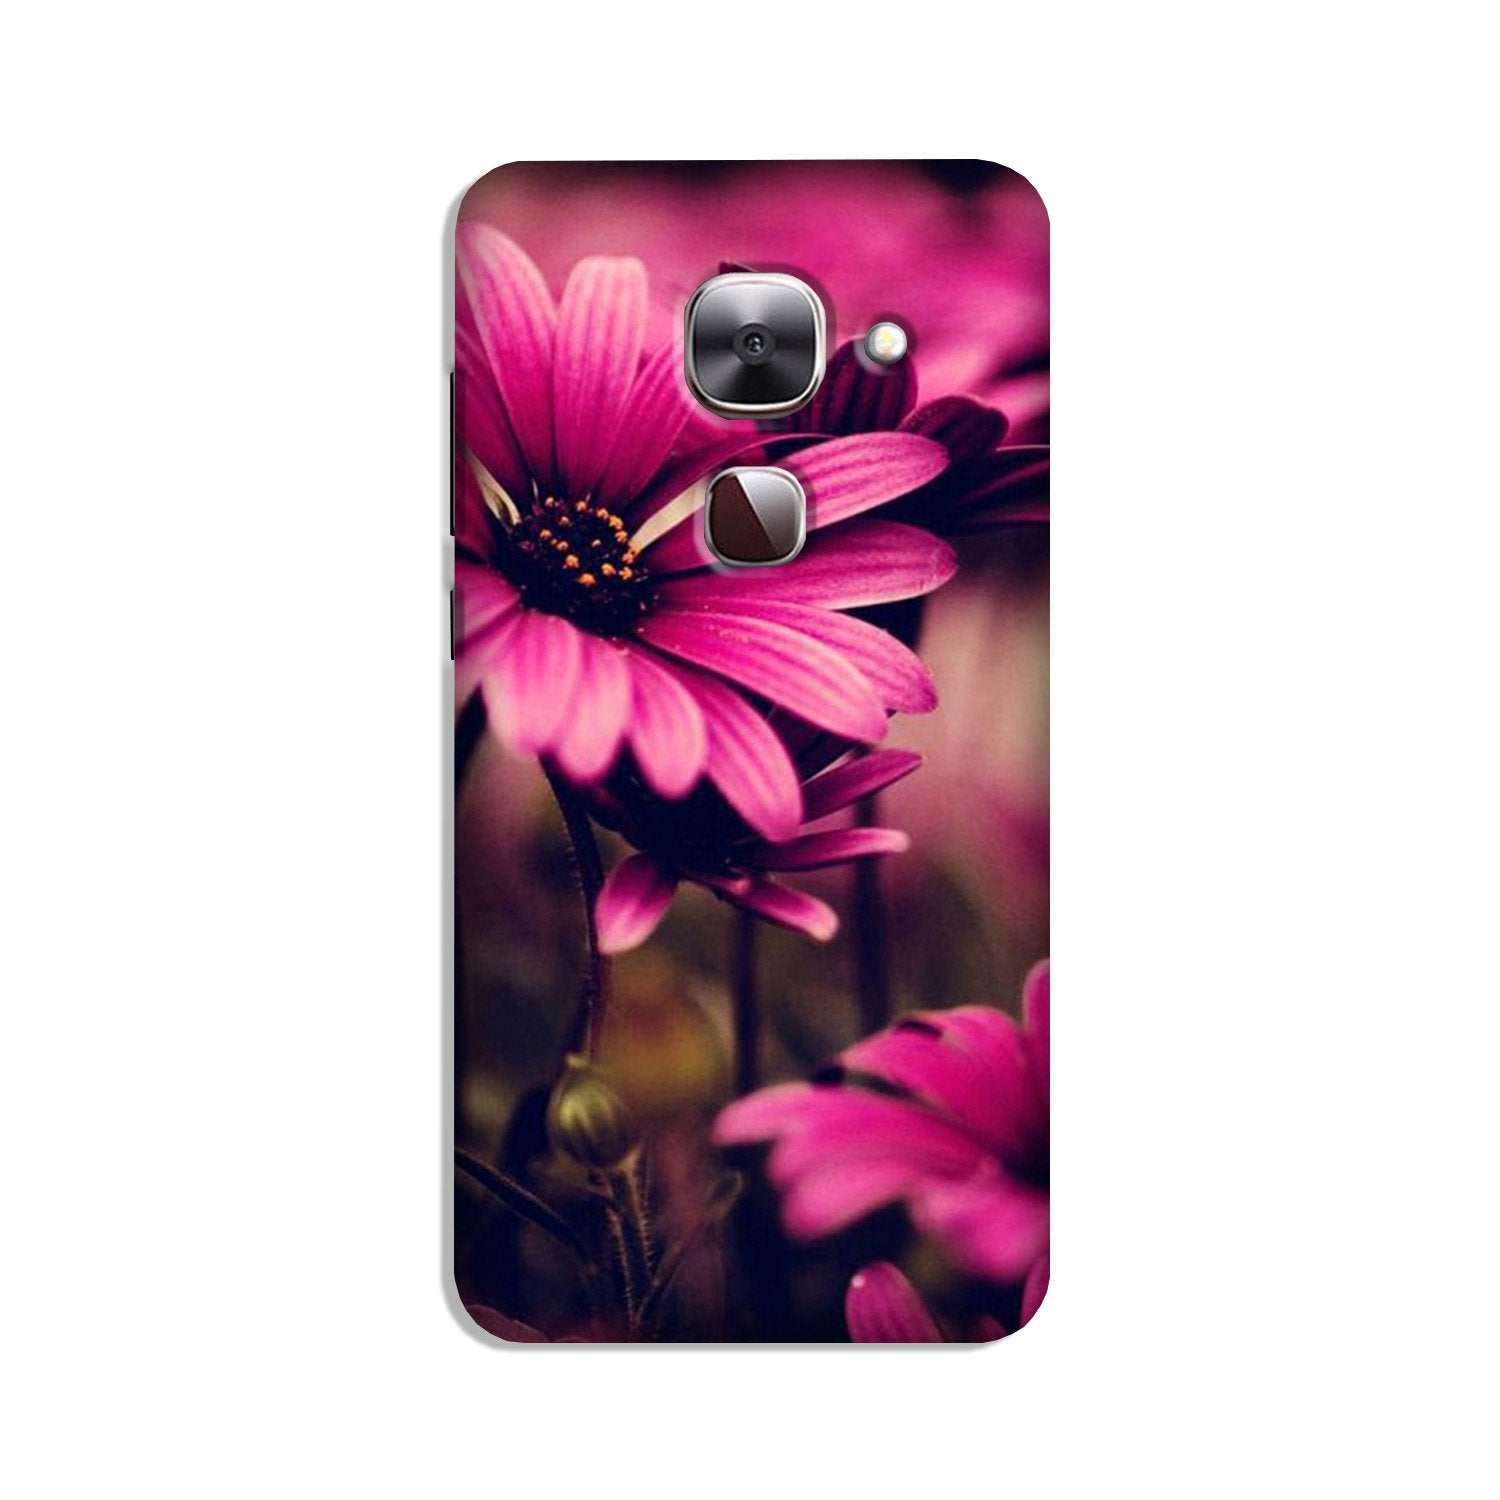 Purple Daisy Case for LeEco le 2s